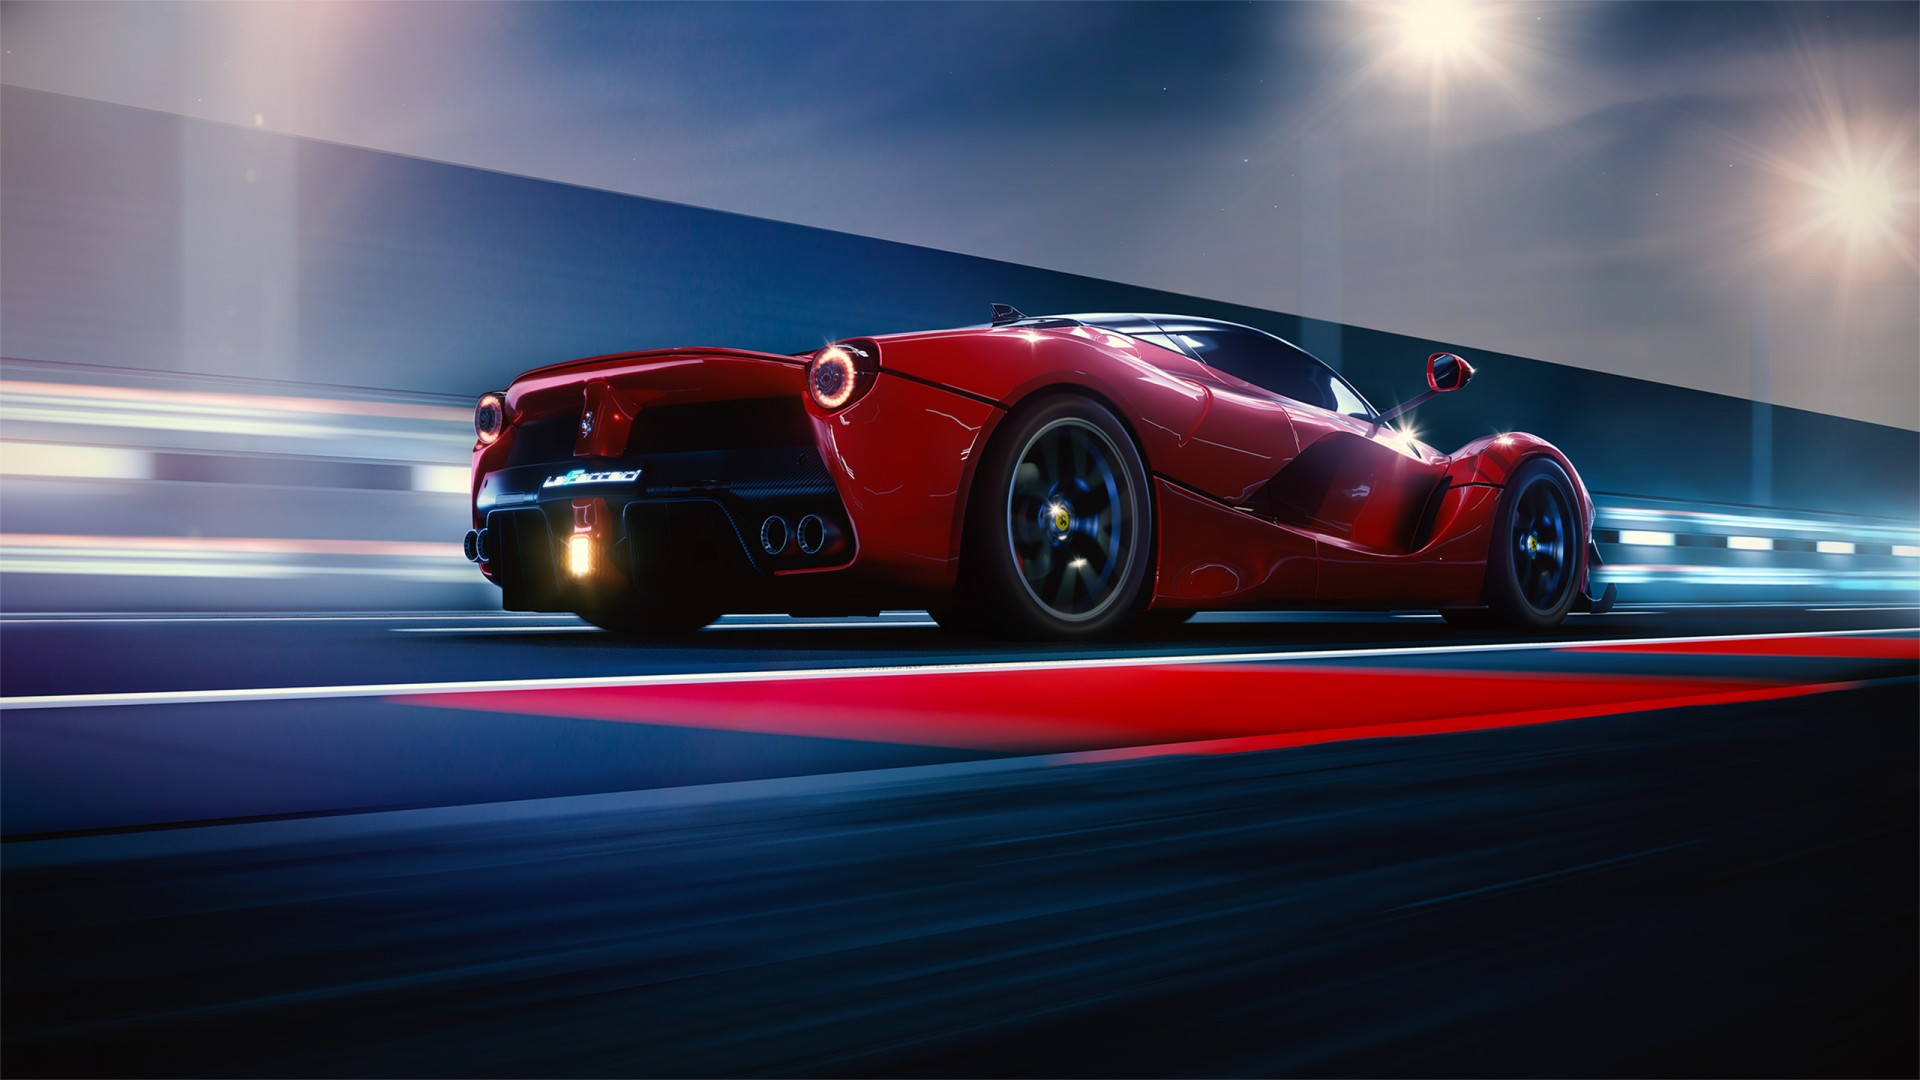 Laferrari Wallpaper Hd Car Wallpapers Id 11511